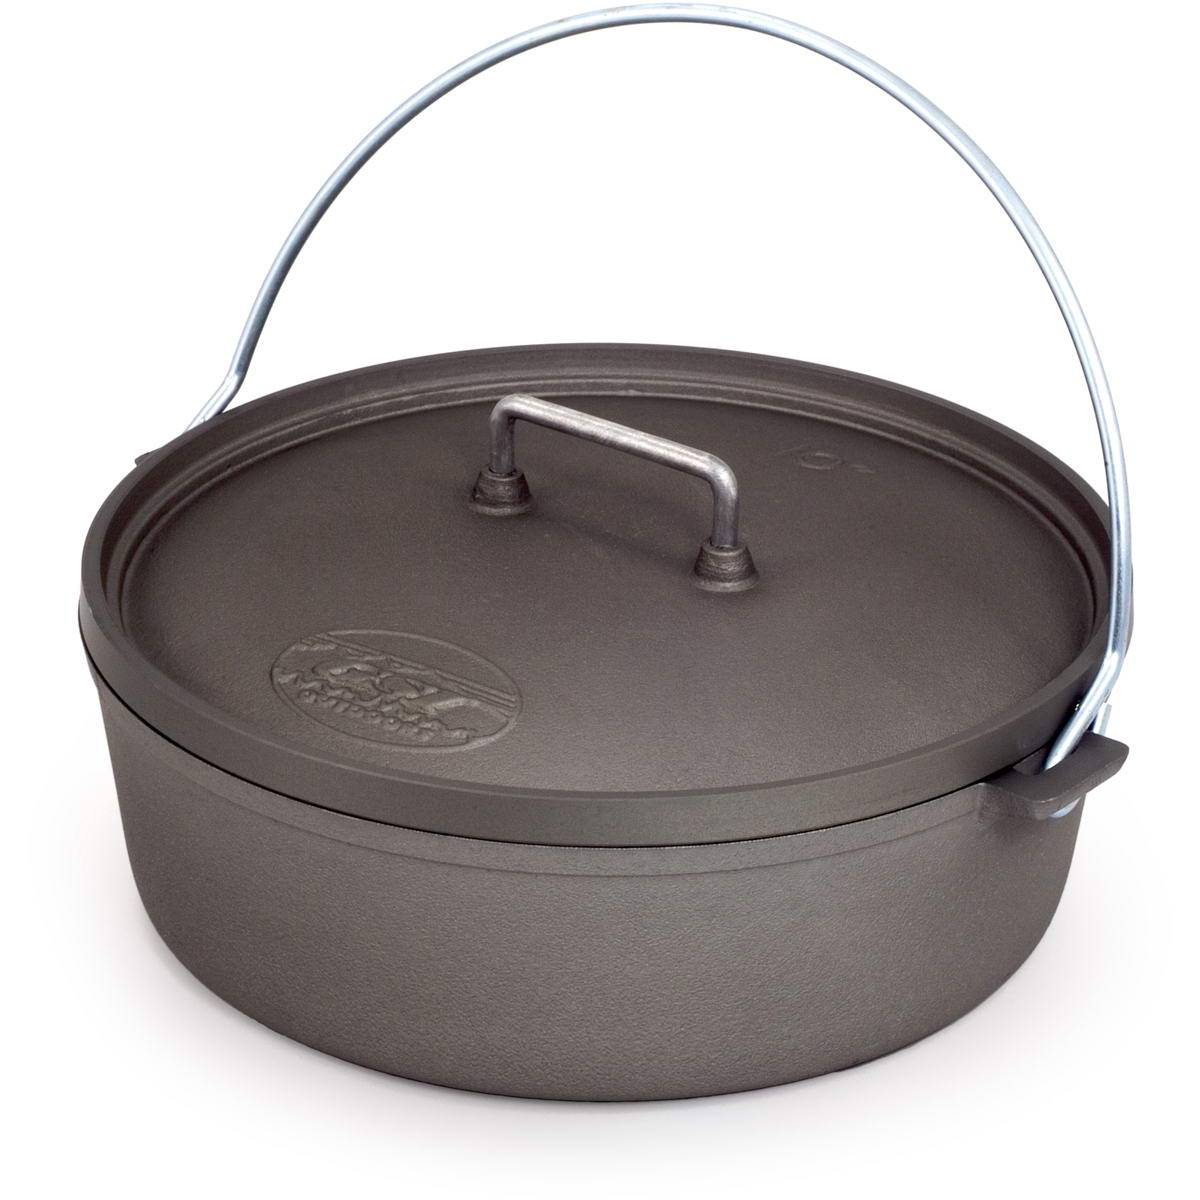 "GSI Hard Anodized 10"" Dutch Oven - Feuertopf - Bild 1"